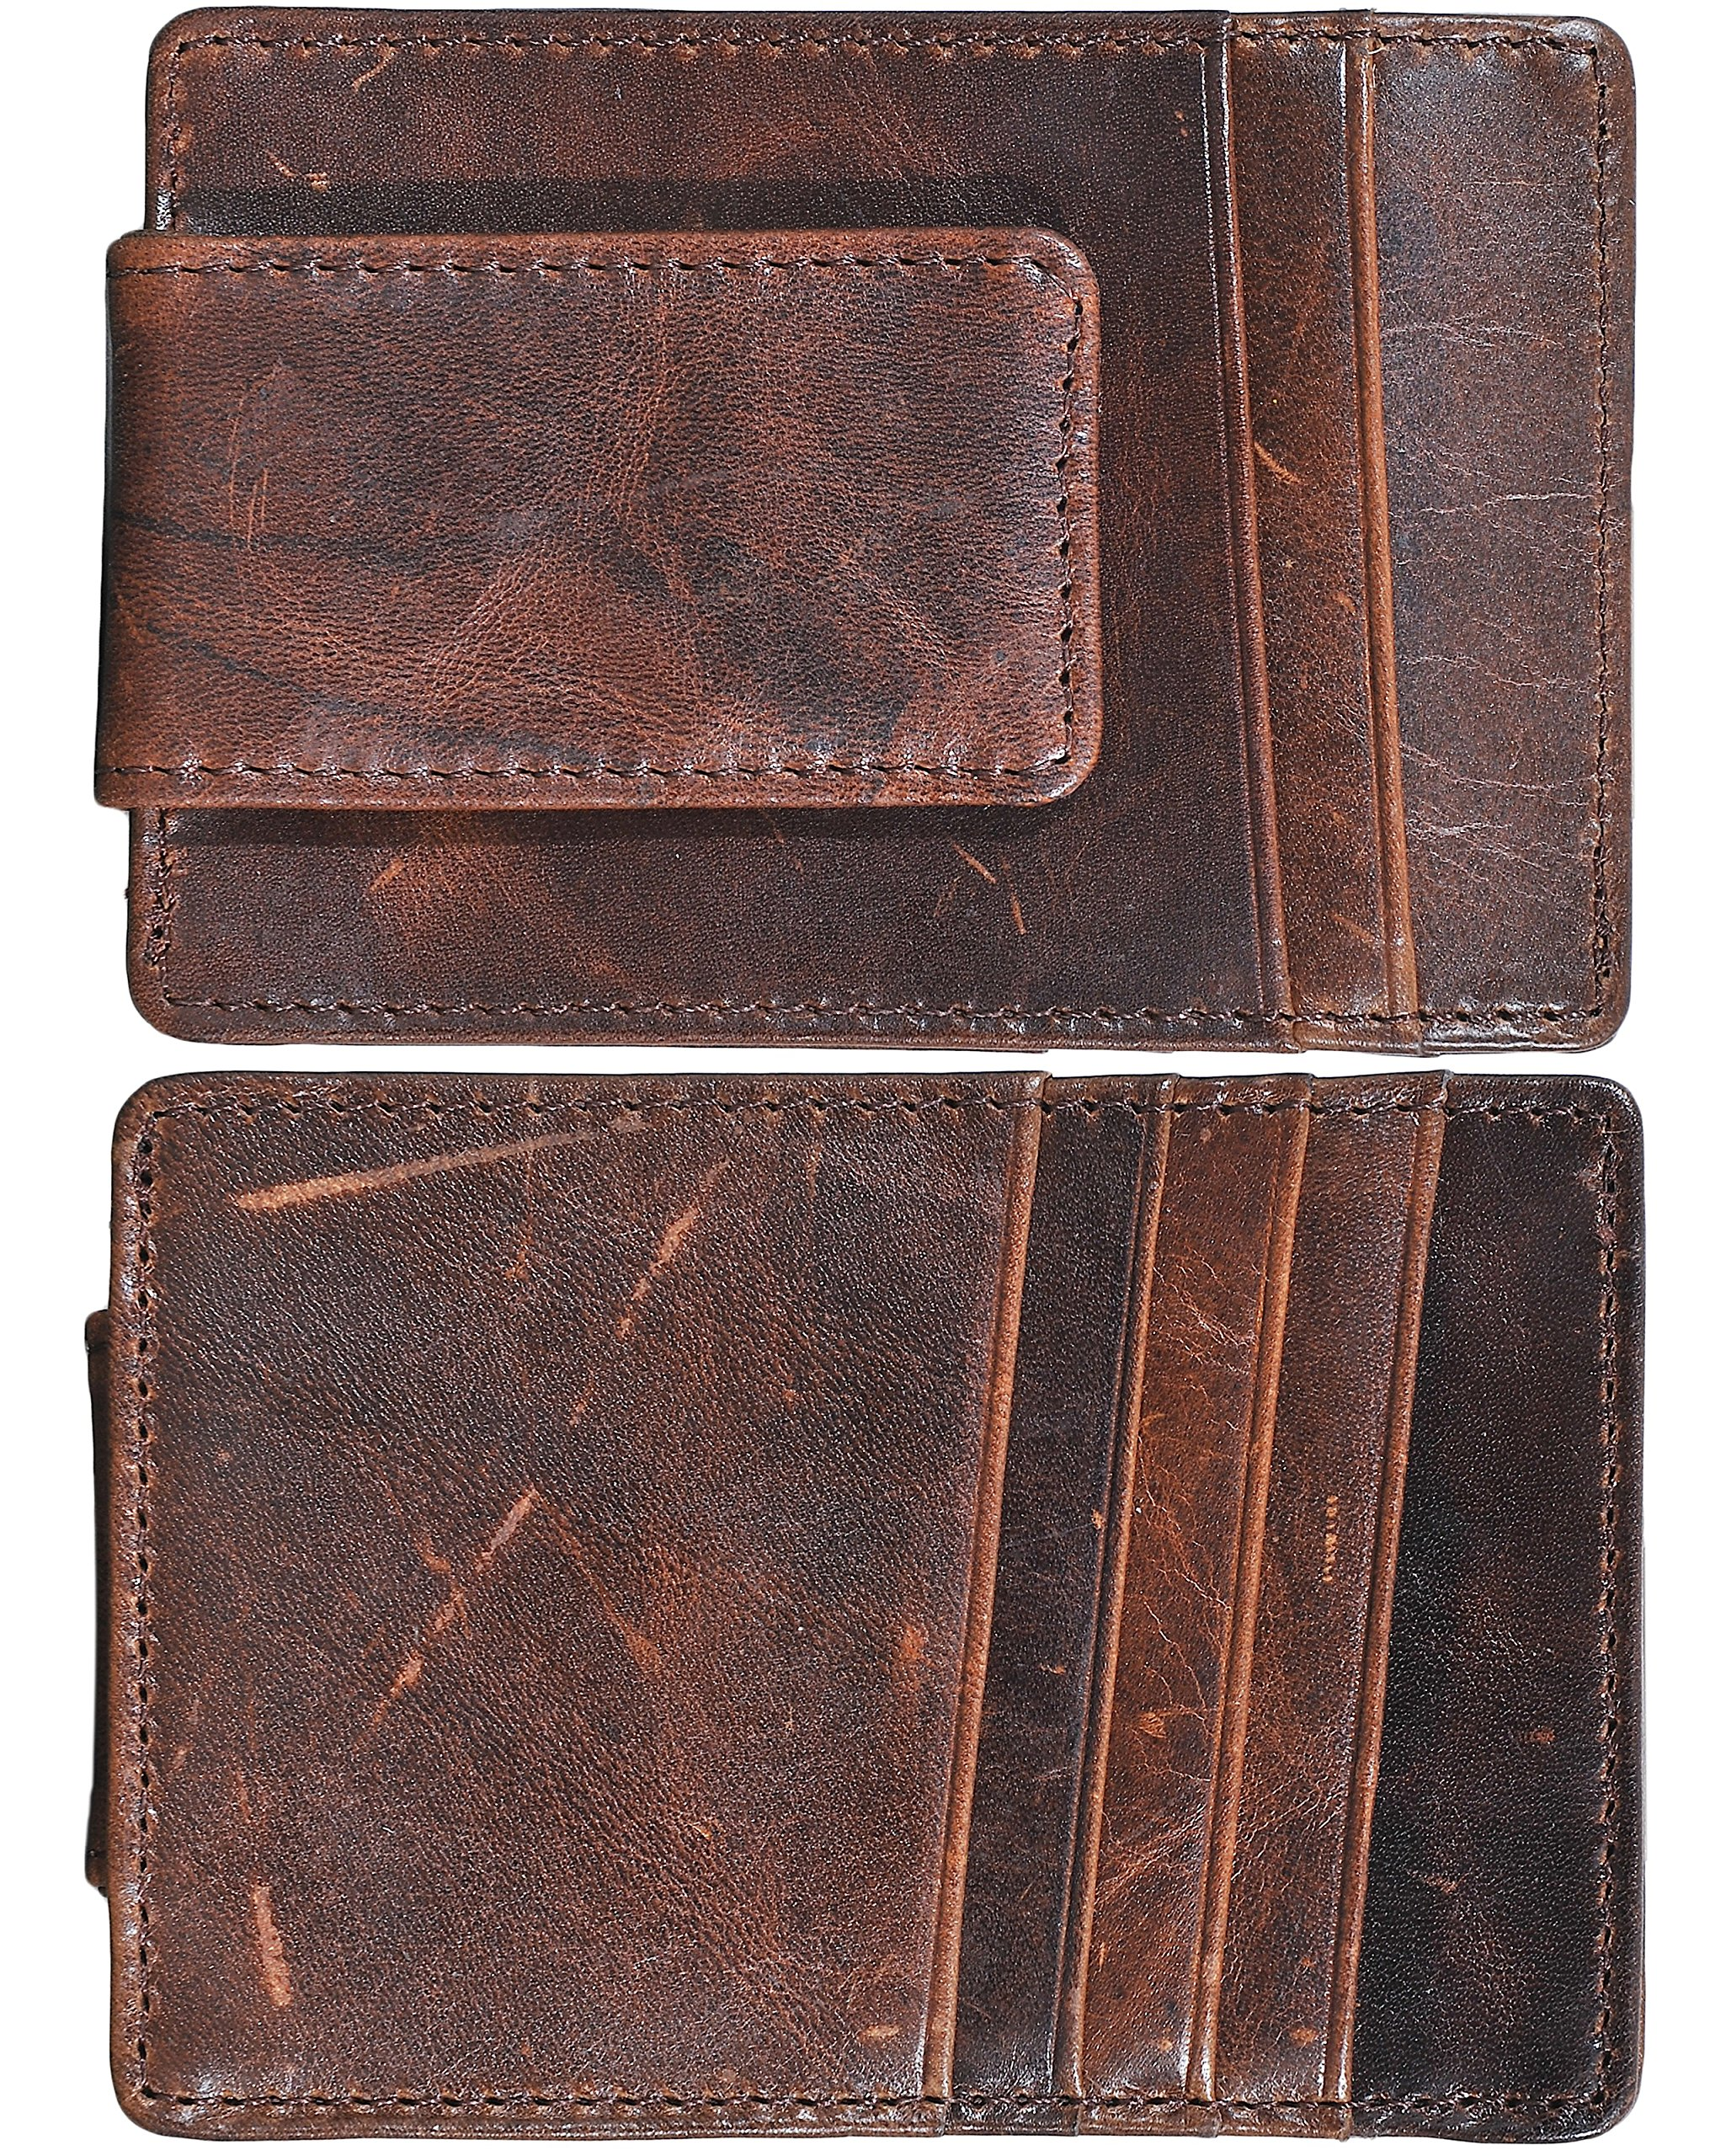 Mens Money Clip Wallet RFID Slim Wallet Genuine Leather Thin Front Pocket Wallet (Coffee (Oil Wax Leather)) by Yuhan Pretty (Image #7)